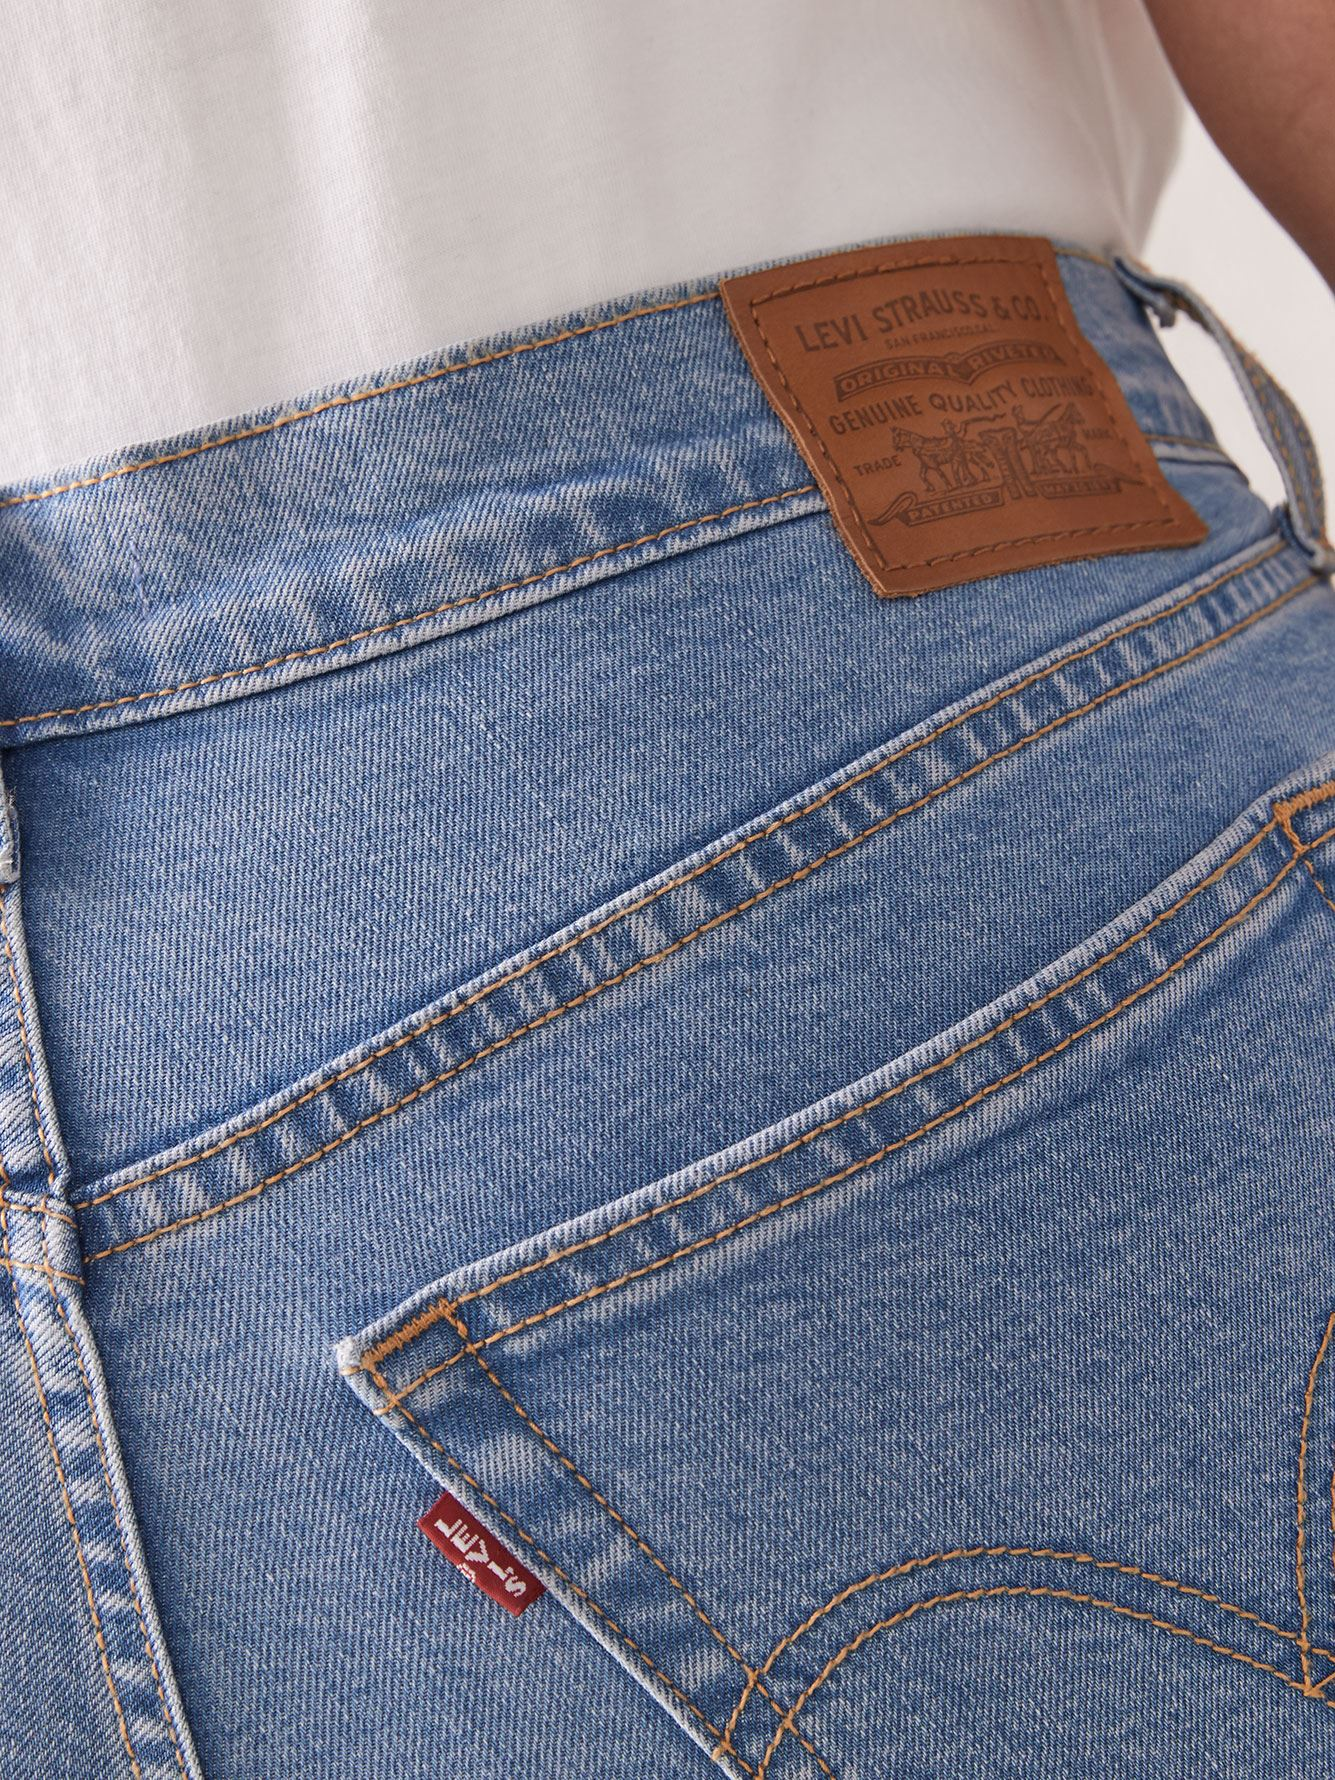 Stretchy High-Rise Wedgie Skinny Ankle Length Jean - Levi's Premium